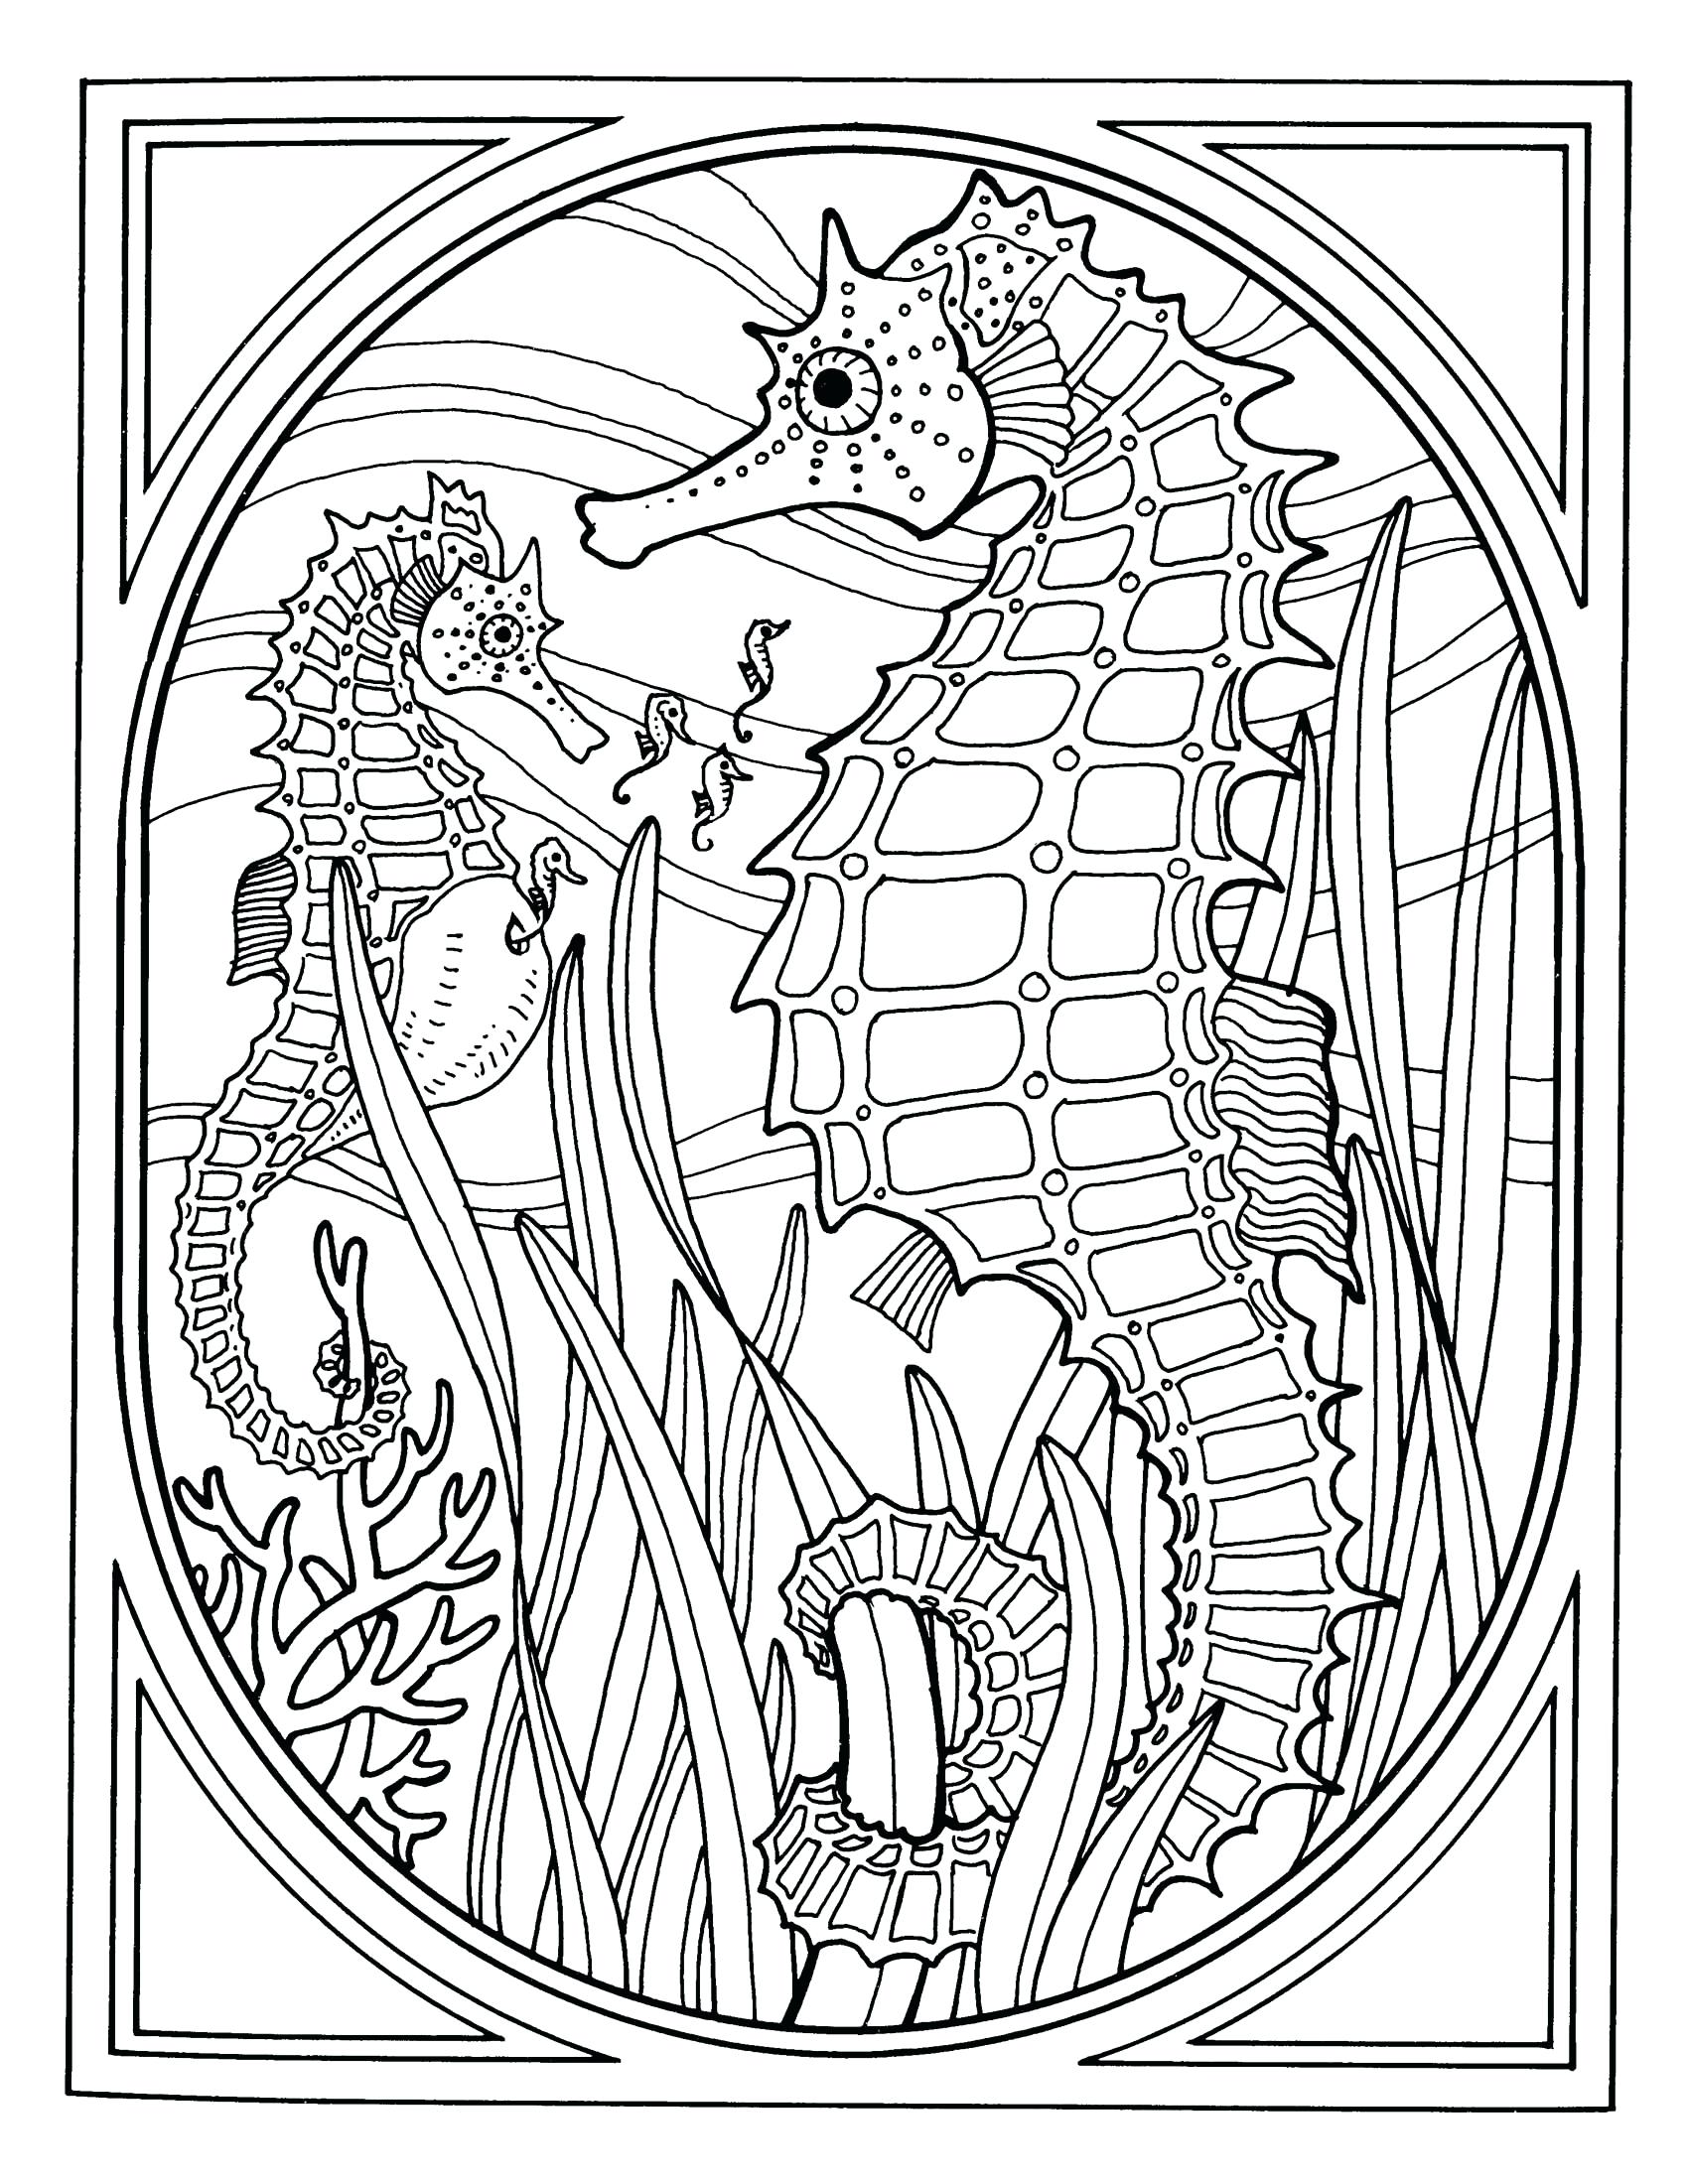 Kaleidoscope Coloring Pages To Print At Getdrawings Com Free For